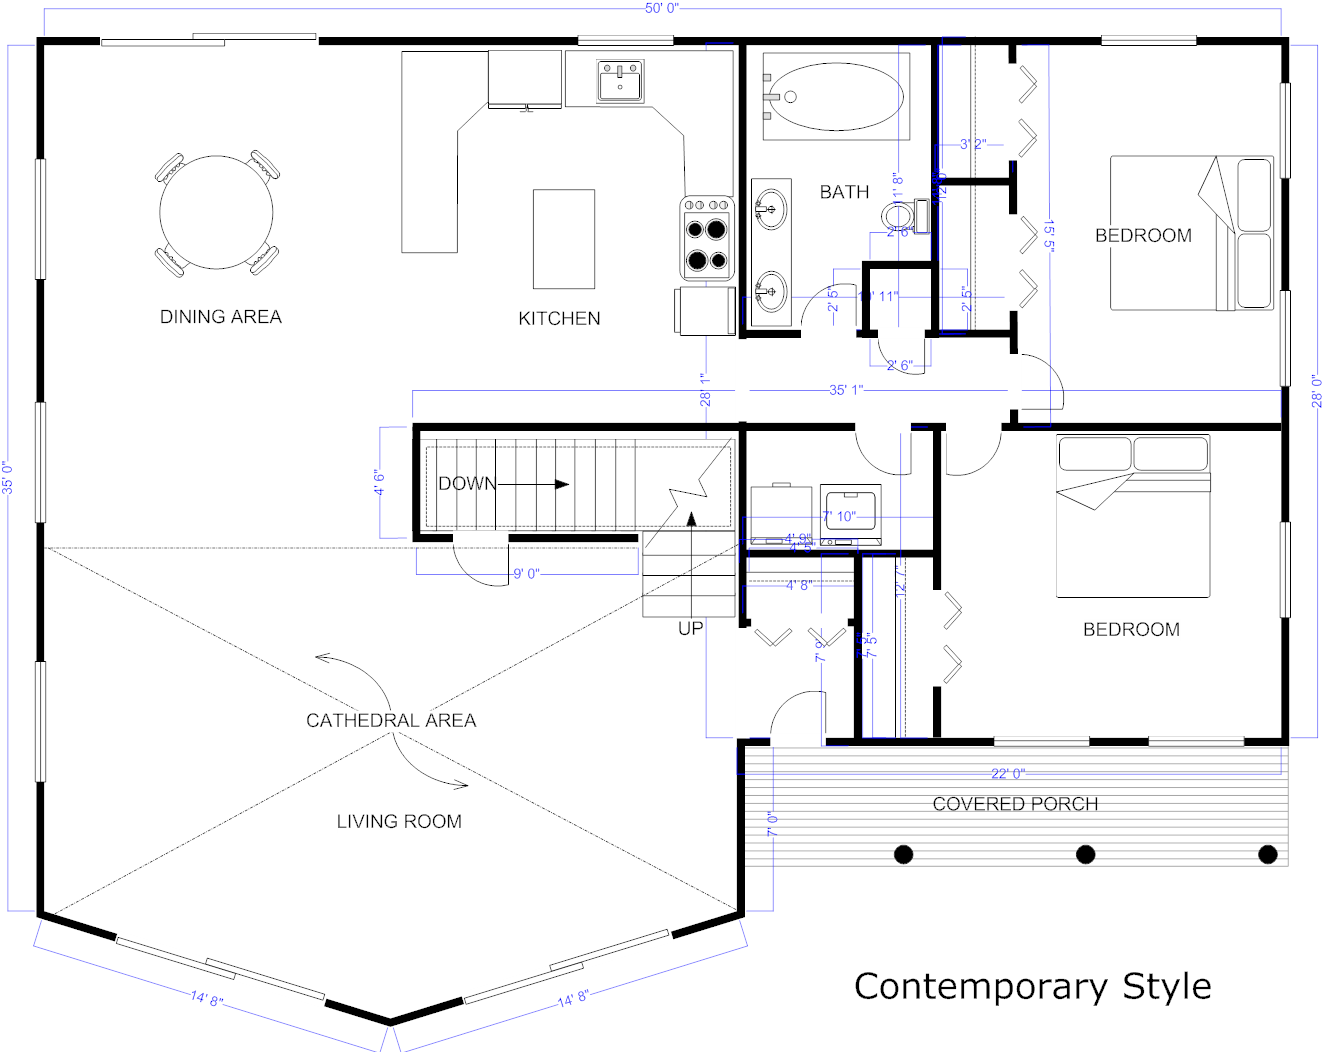 blueprint house design - Home Design Blueprint